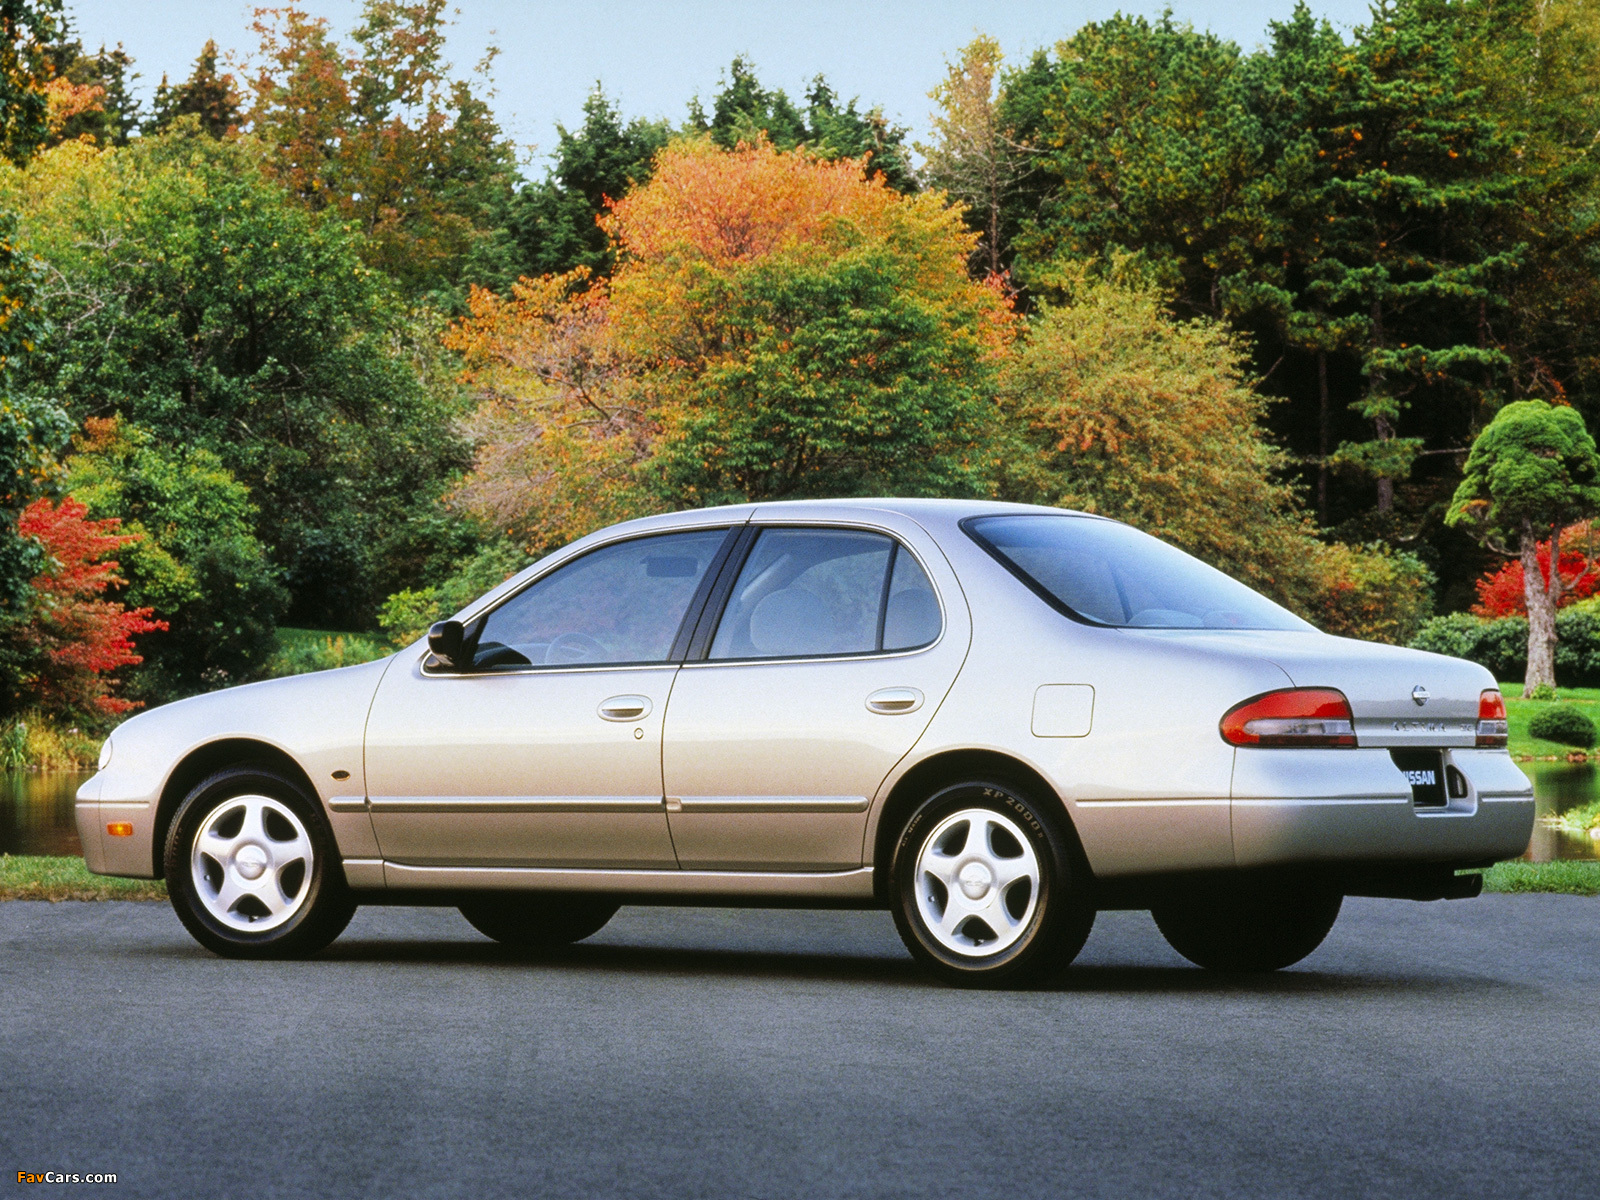 Images Of Nissan Altima 1997 98 1600x1200